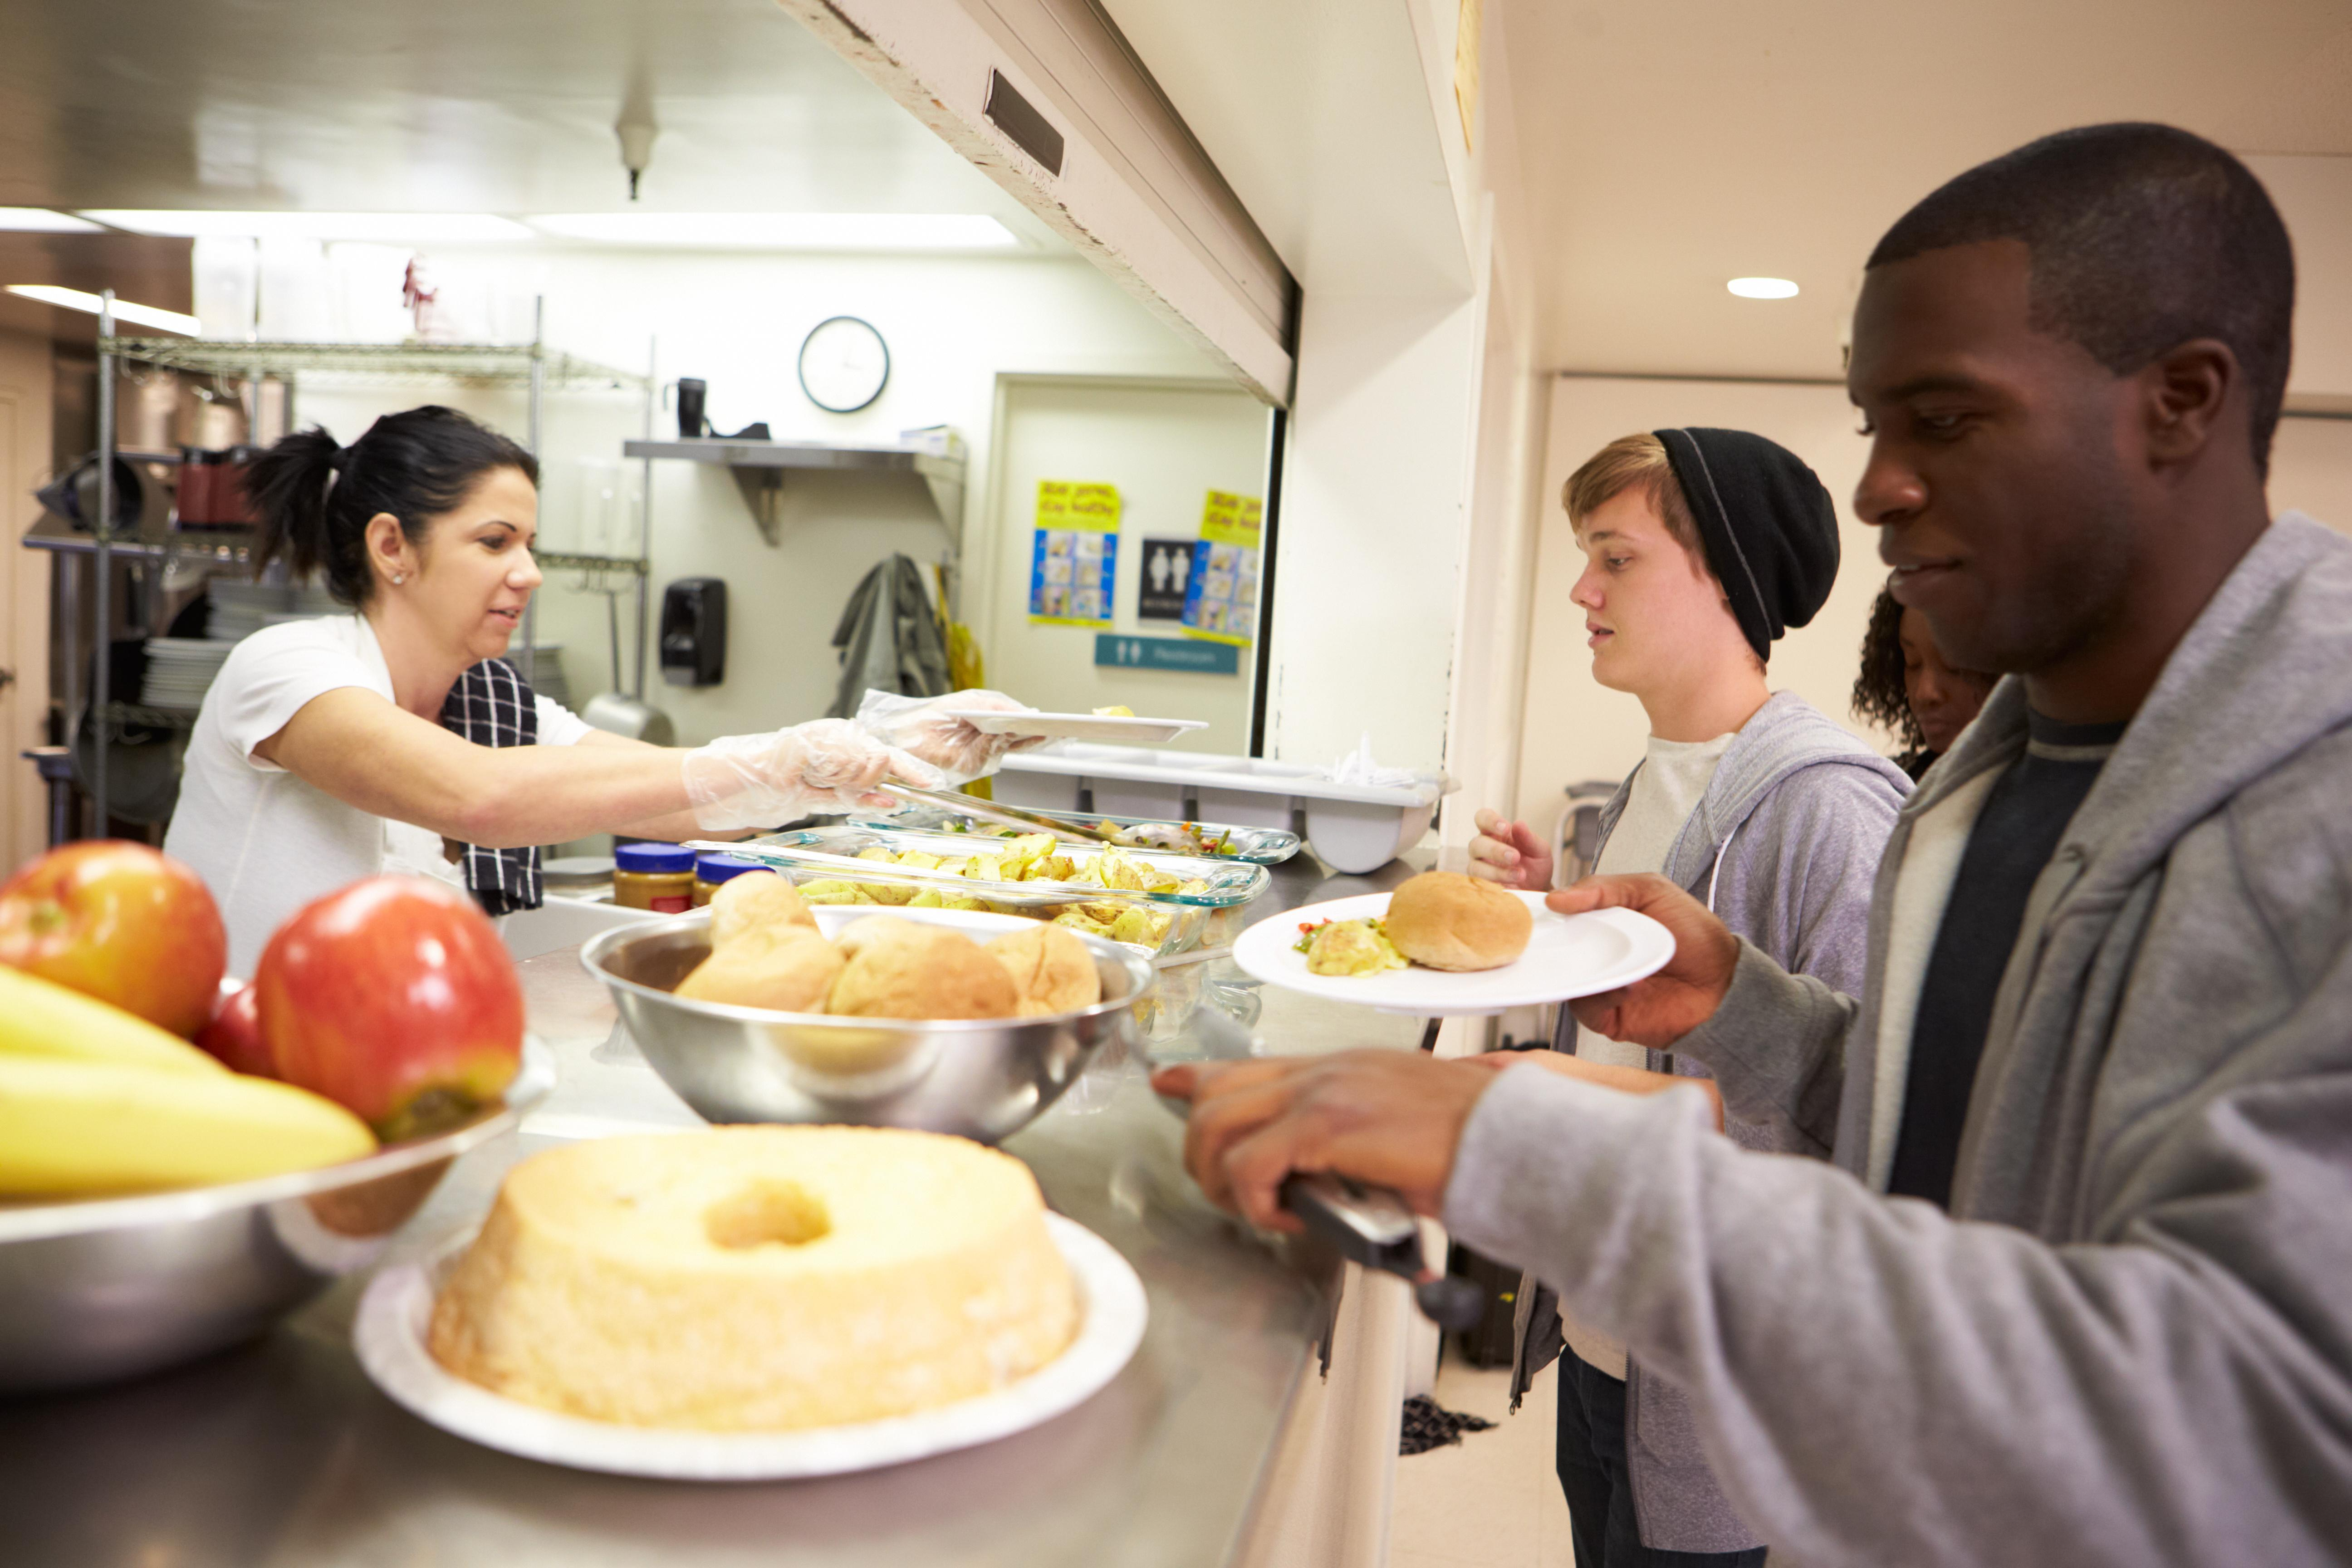 Why Youth Shelters Are Needed in Your Community